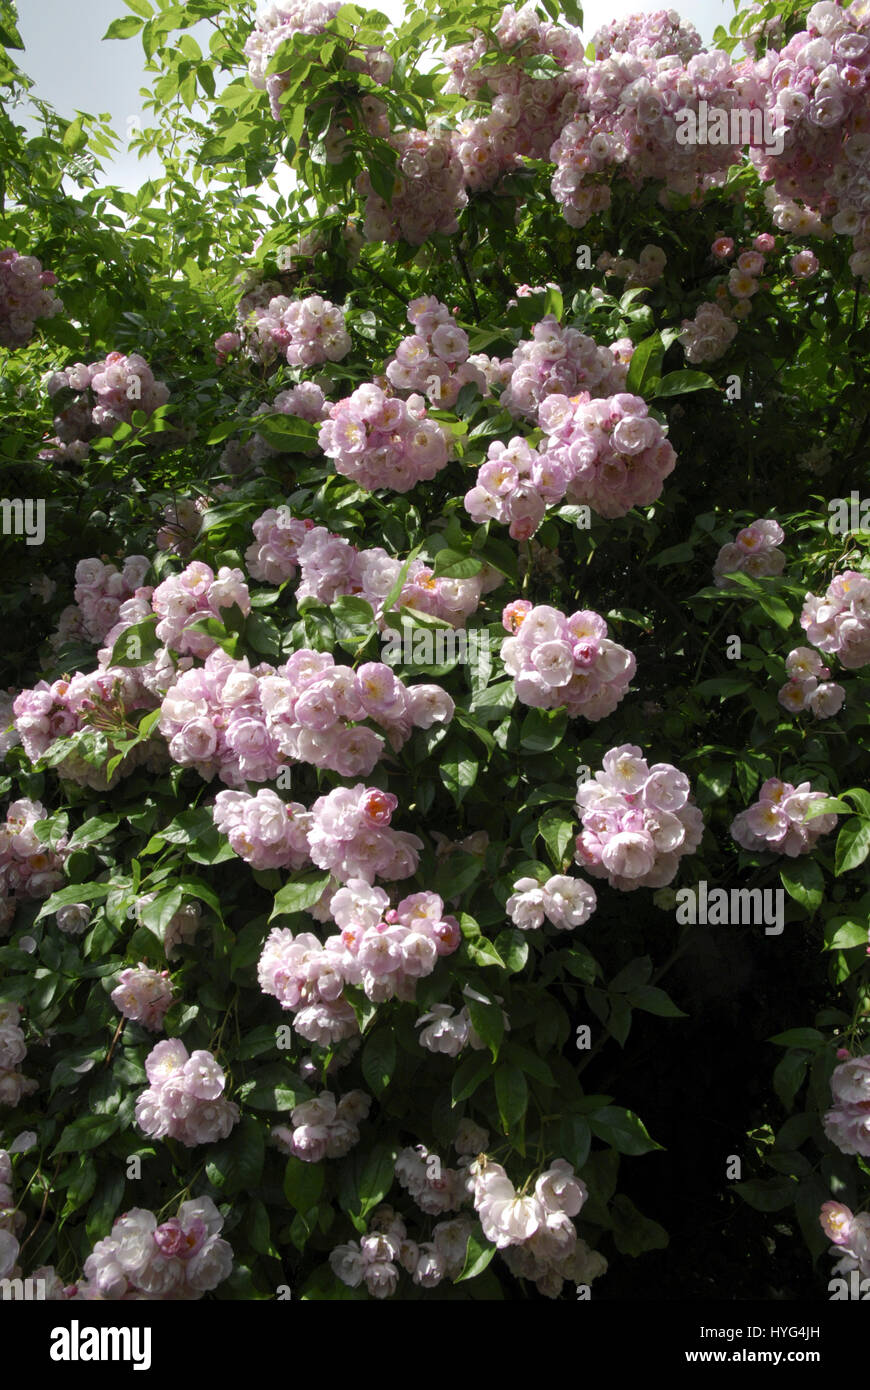 Rambling Rose with Pink Flowers.  Variety Uncertain - Stock Image